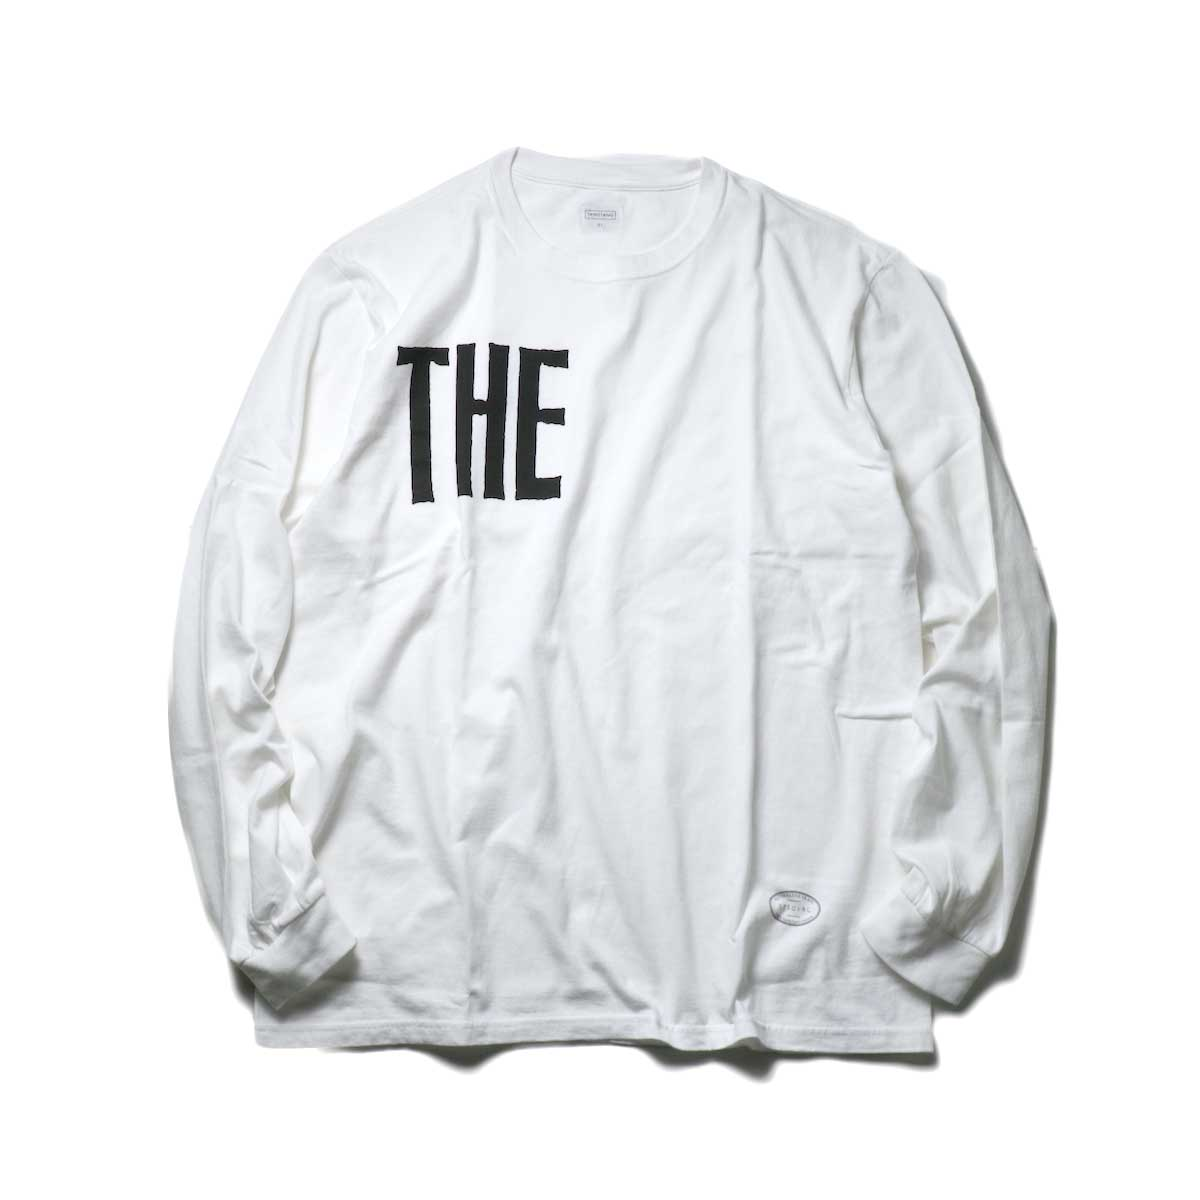 TANGTANG / ARCHIVE -THE- (White)